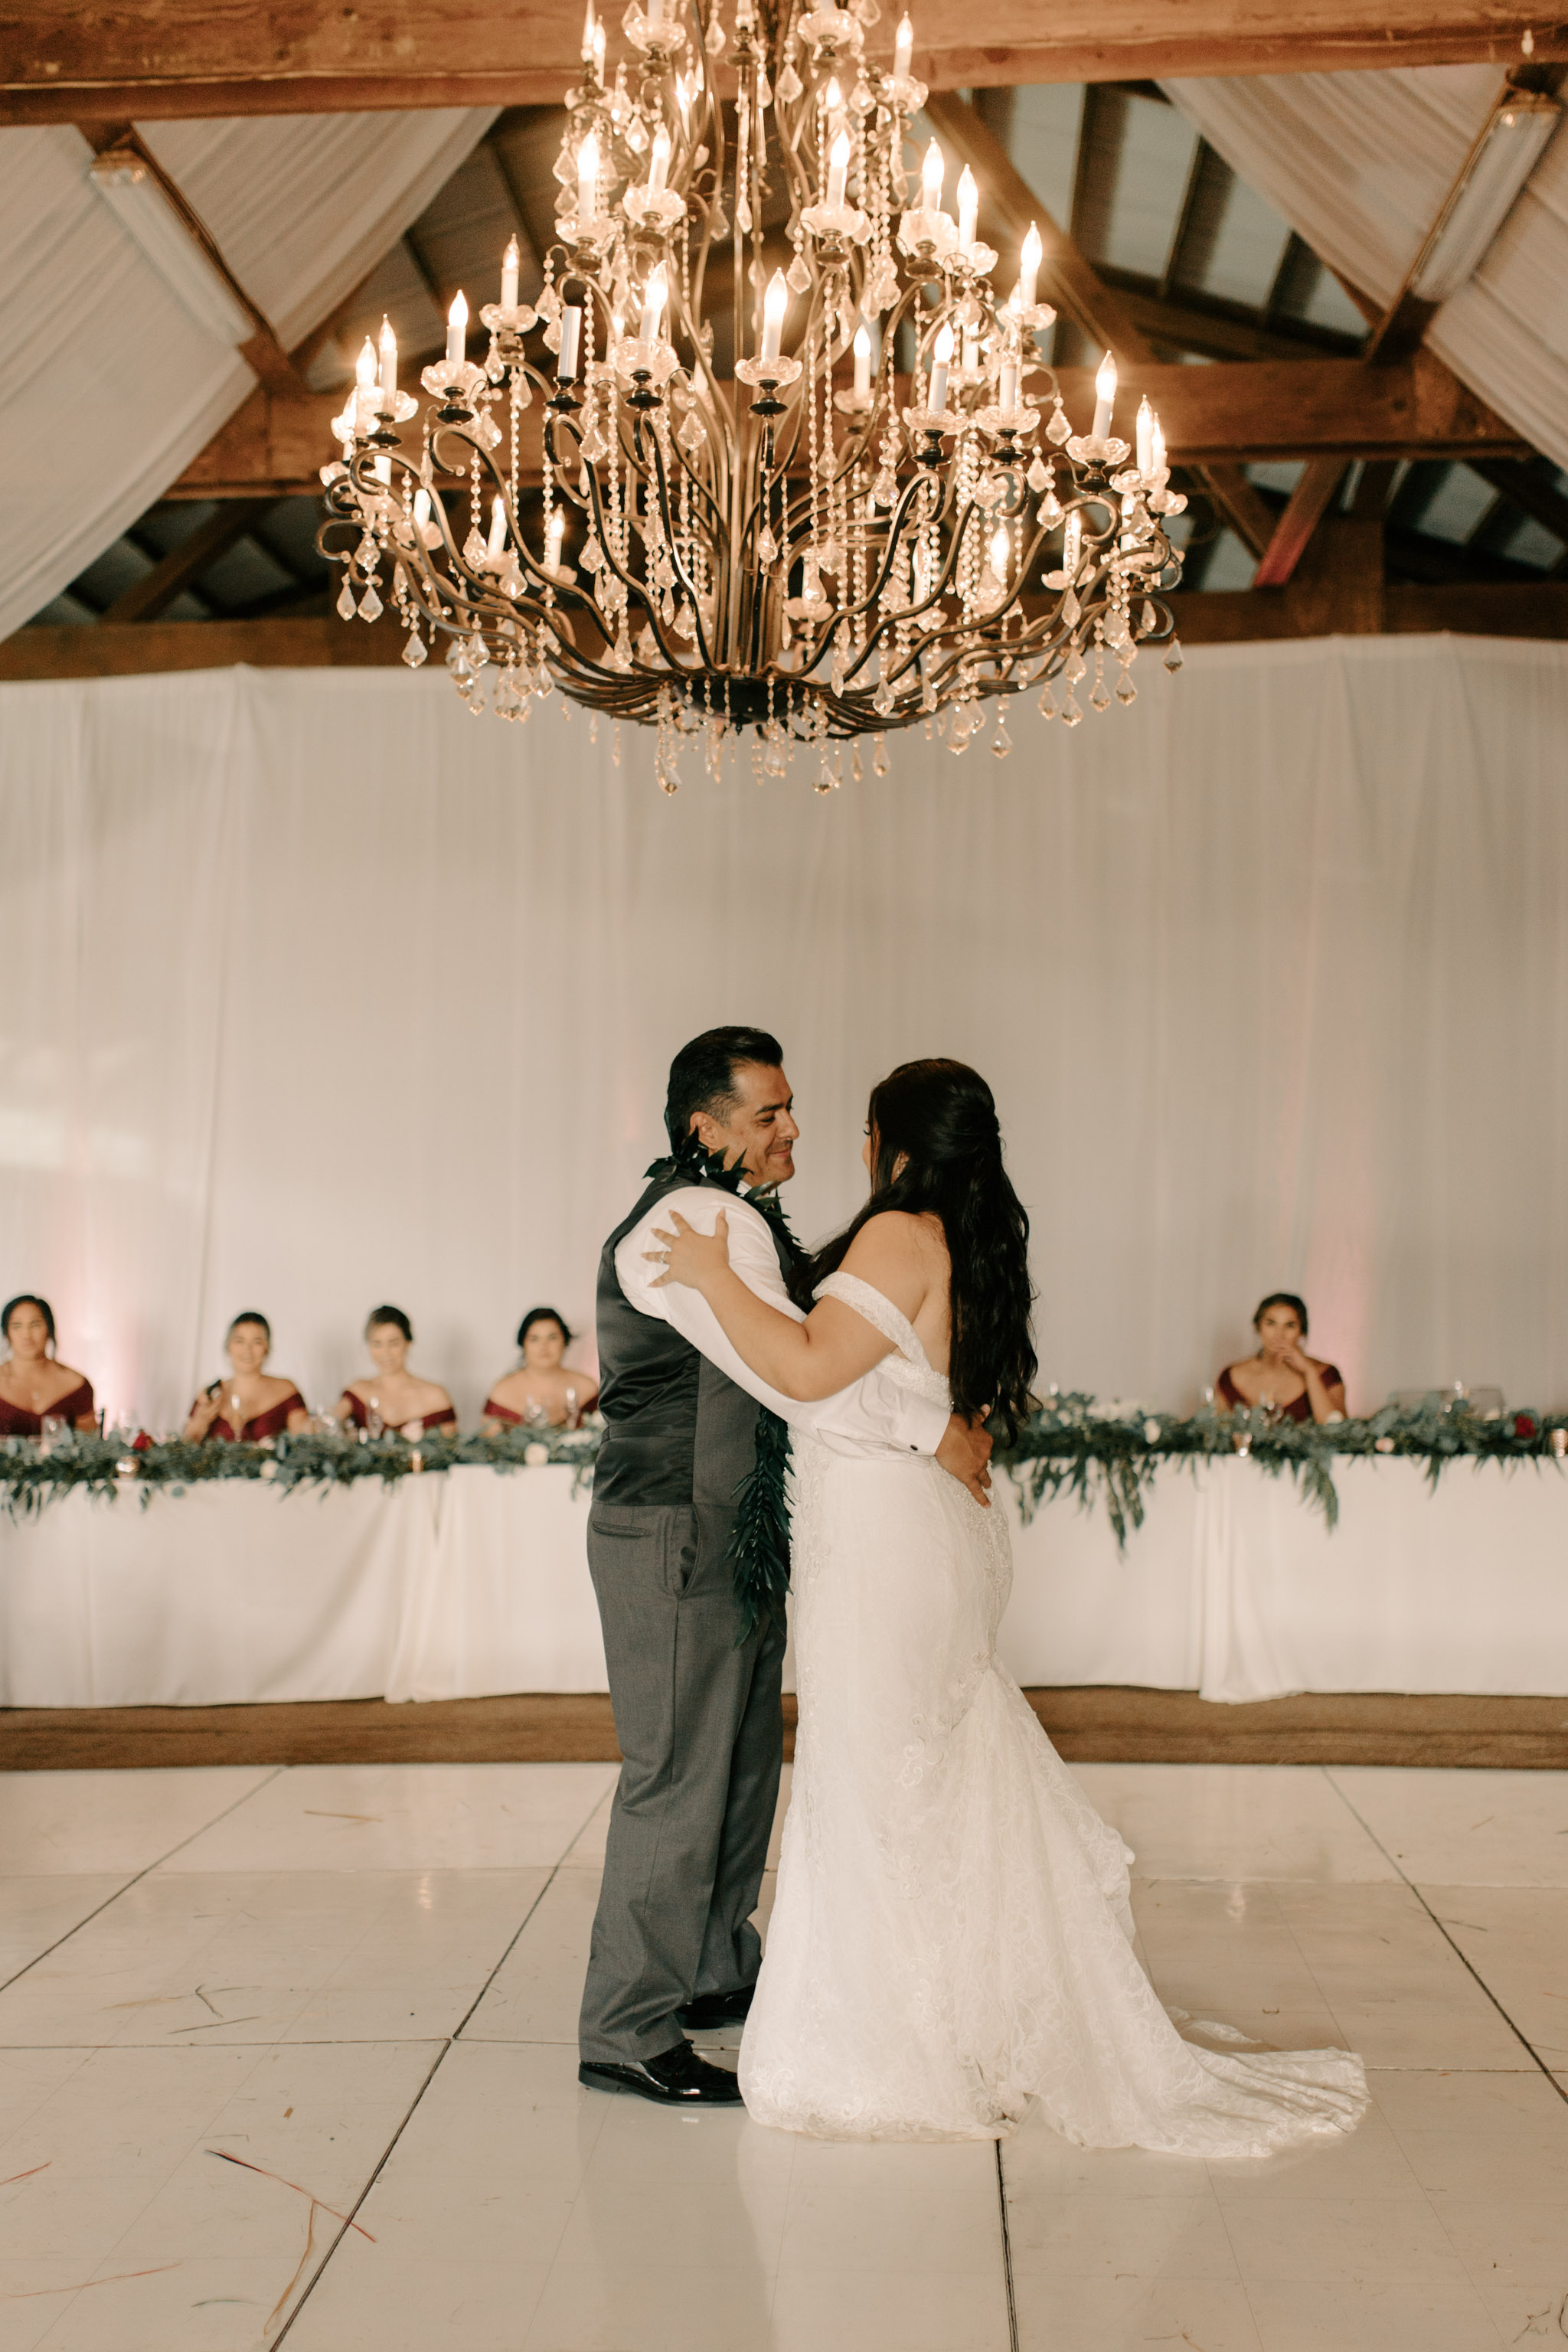 Father and Daughter Dance - Hawaii Barn Wedding Reception - Sunset Ranch Hawaii Wedding By Oahu Wedding Photographer Desiree Leilani